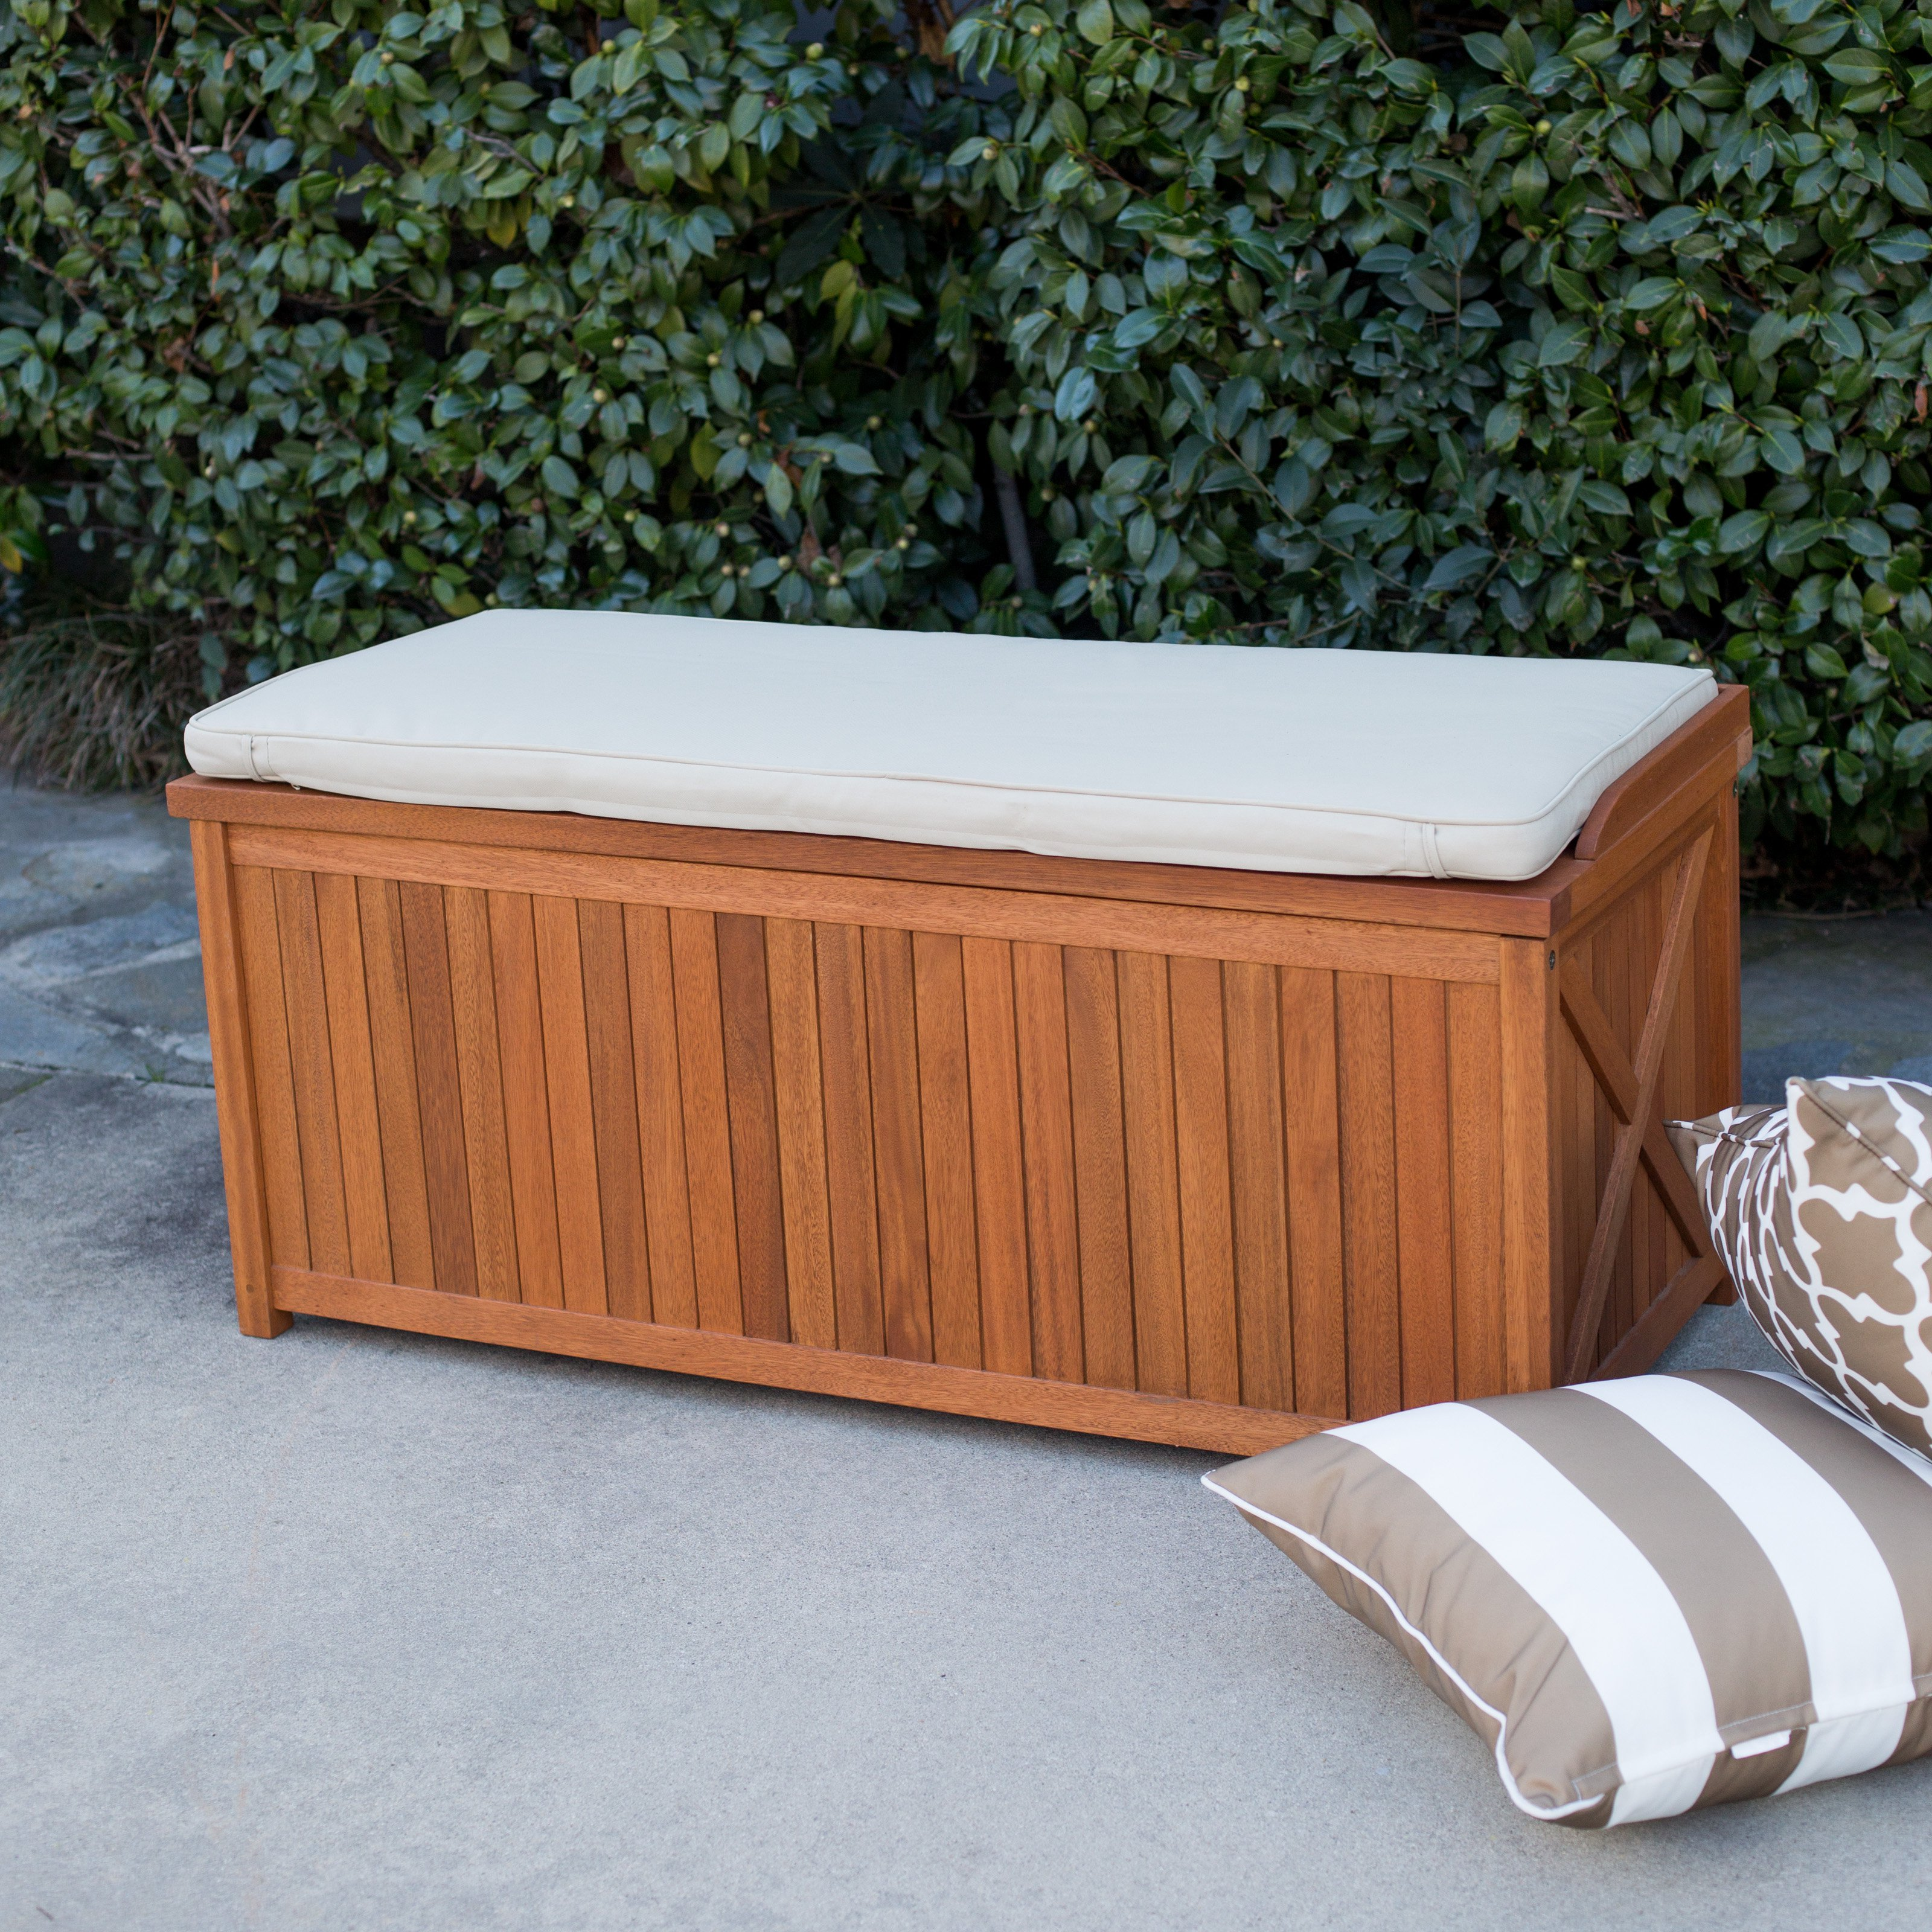 Belham Living Brighton 48 in. Outdoor Storage Deck Box with Cushion Natural by